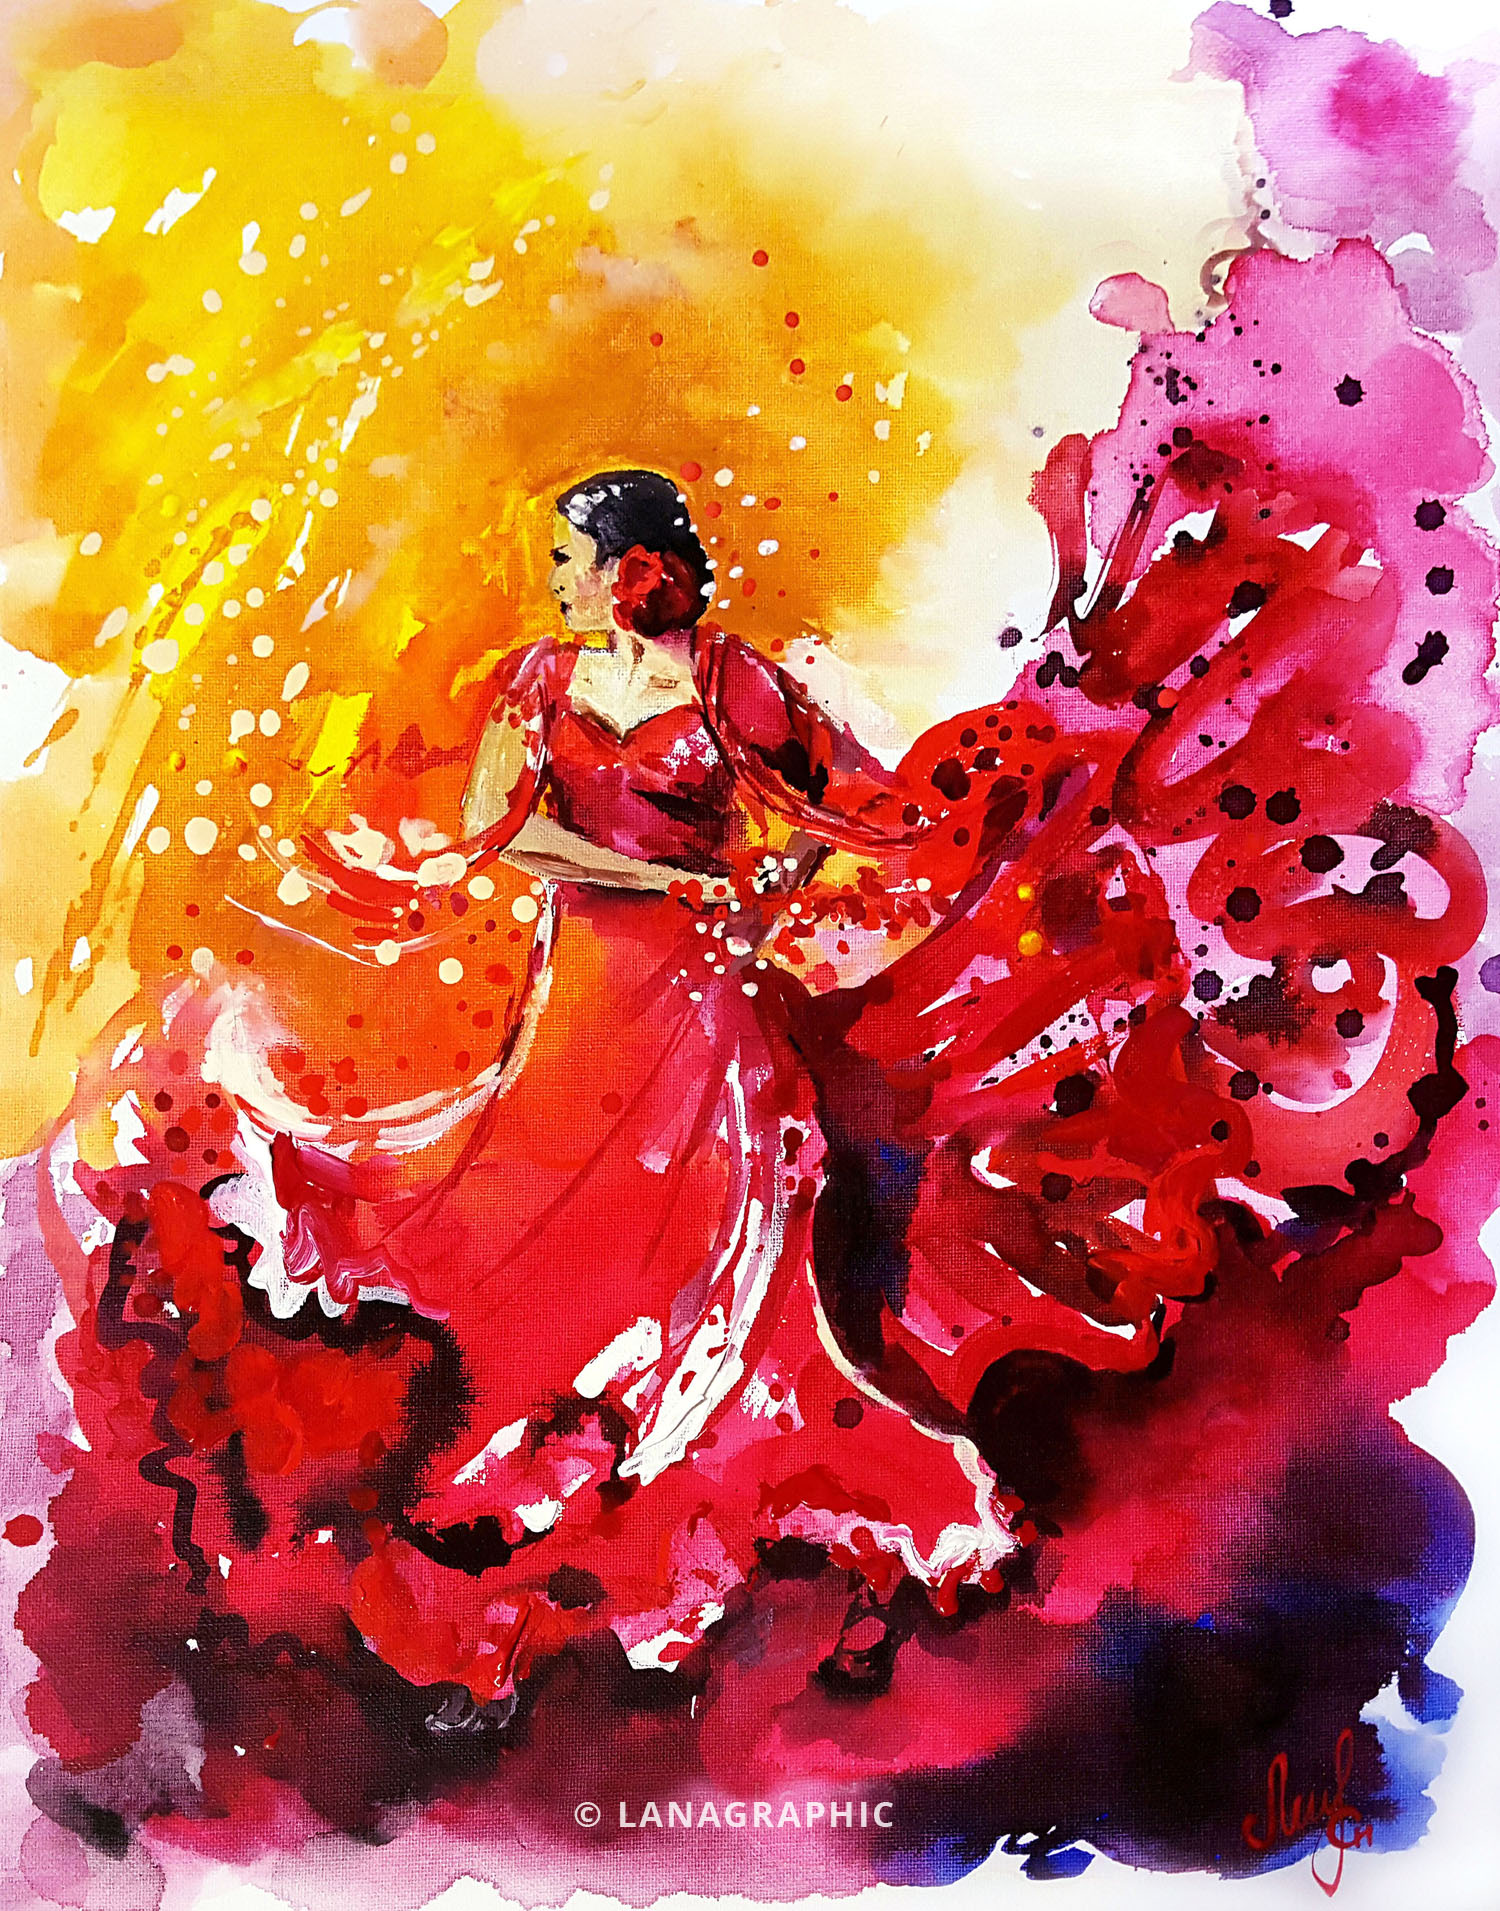 Rhythms of passion and joy-painting-by-Lanagraphic